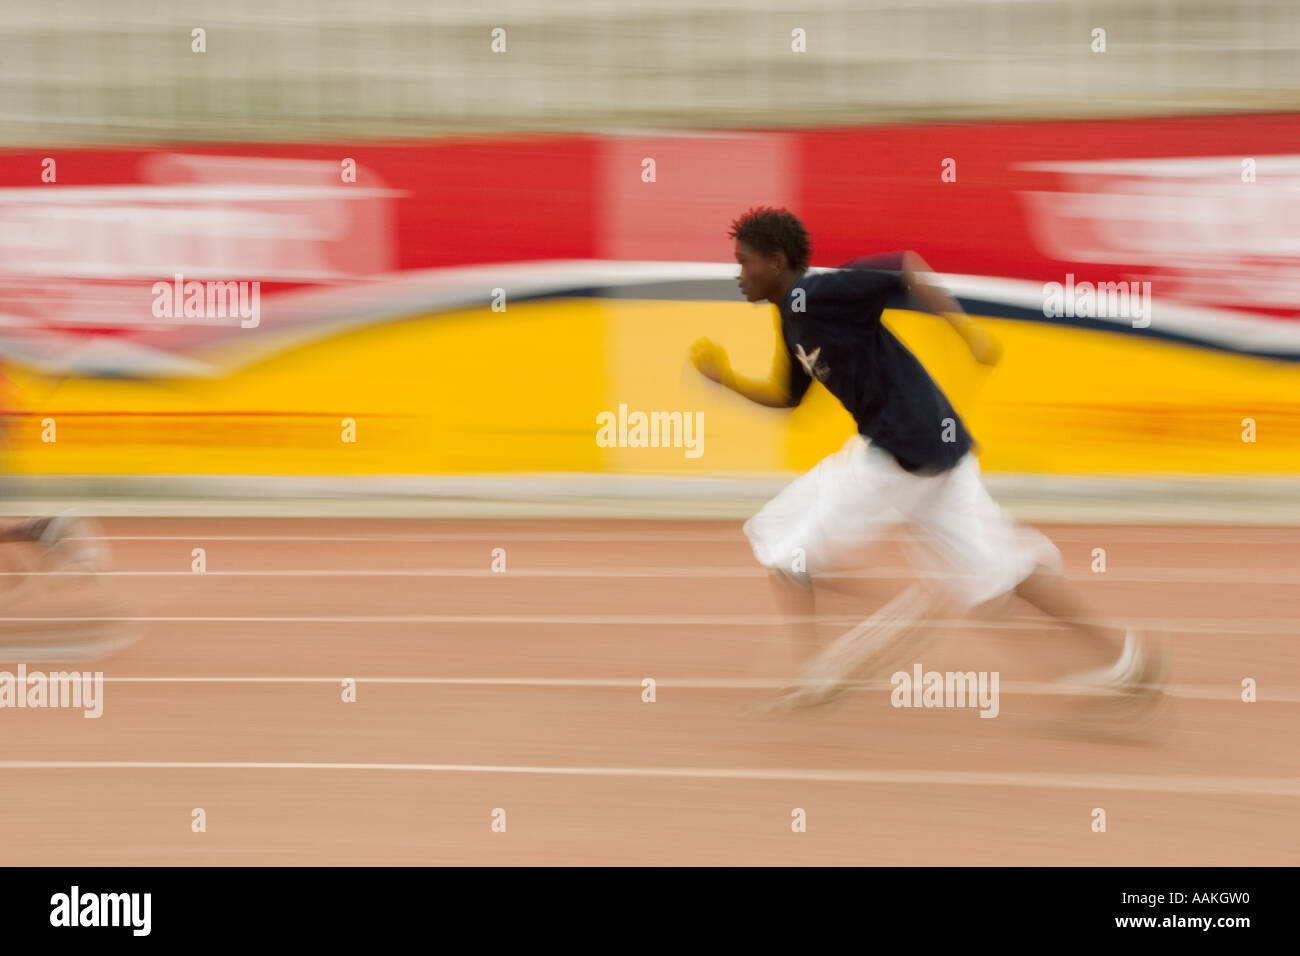 Student competes in relay race - Stock Image